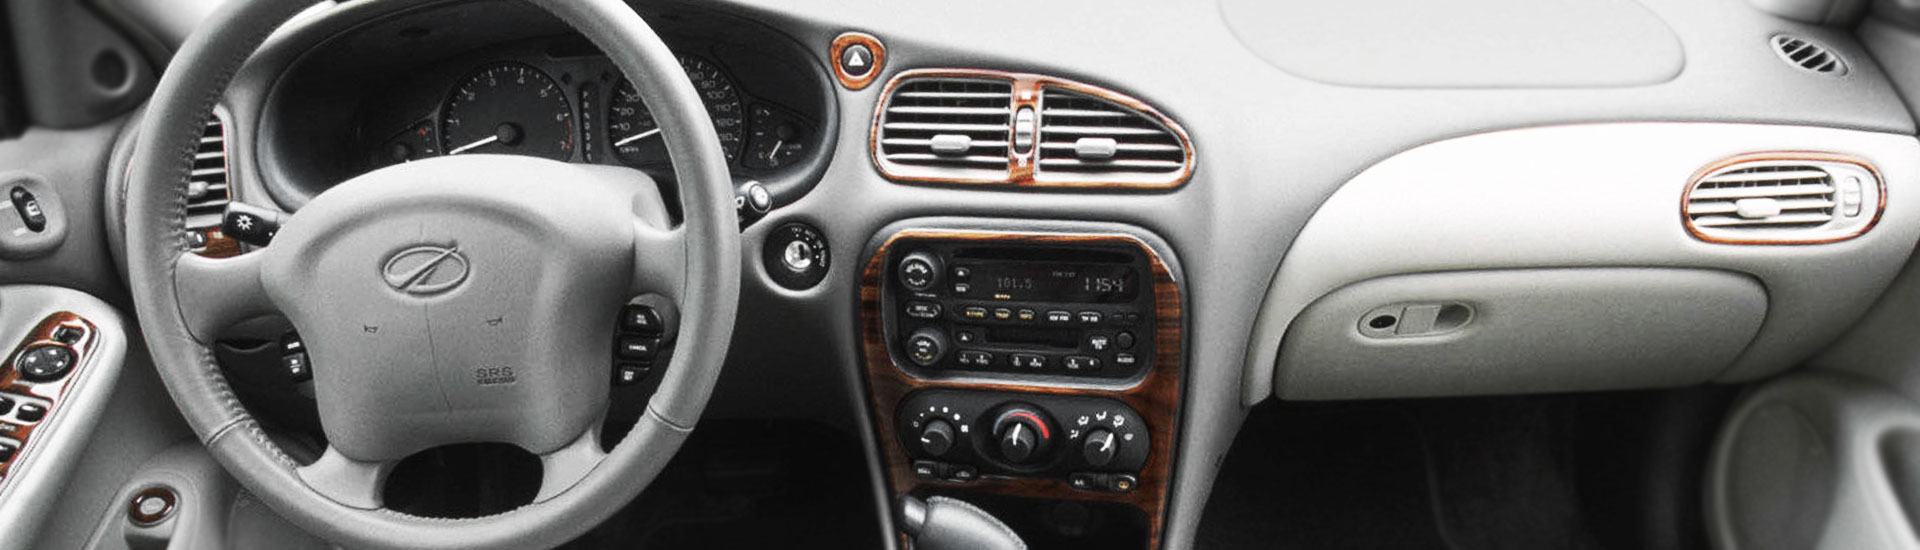 Oldsmobile Alero Custom Dash Kits